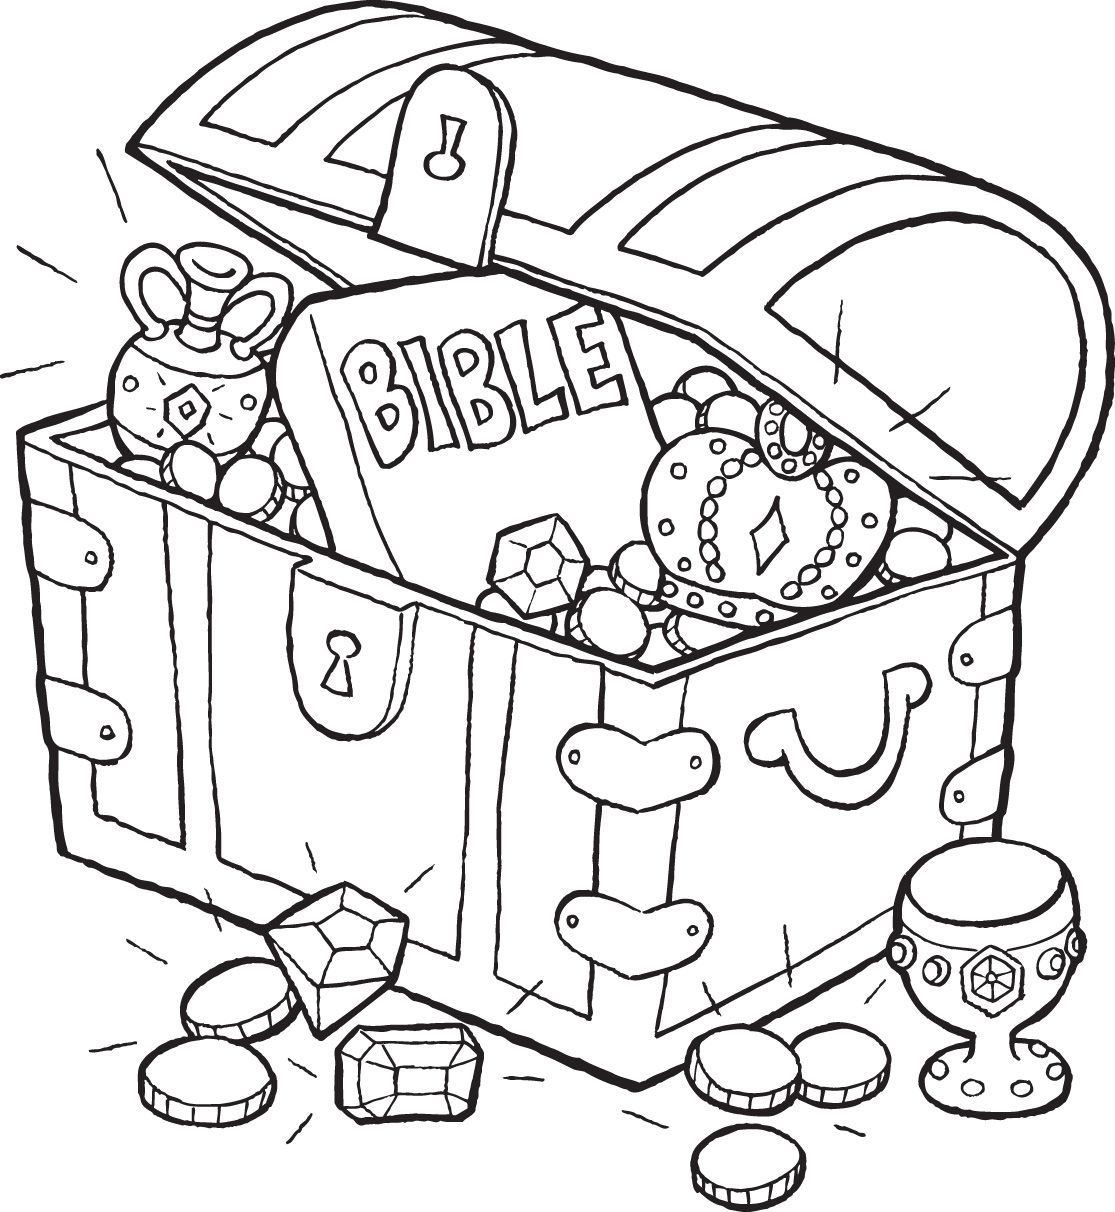 Pirate ships coloring pages az coloring pages - Bible Treasure Chest Coloring Page